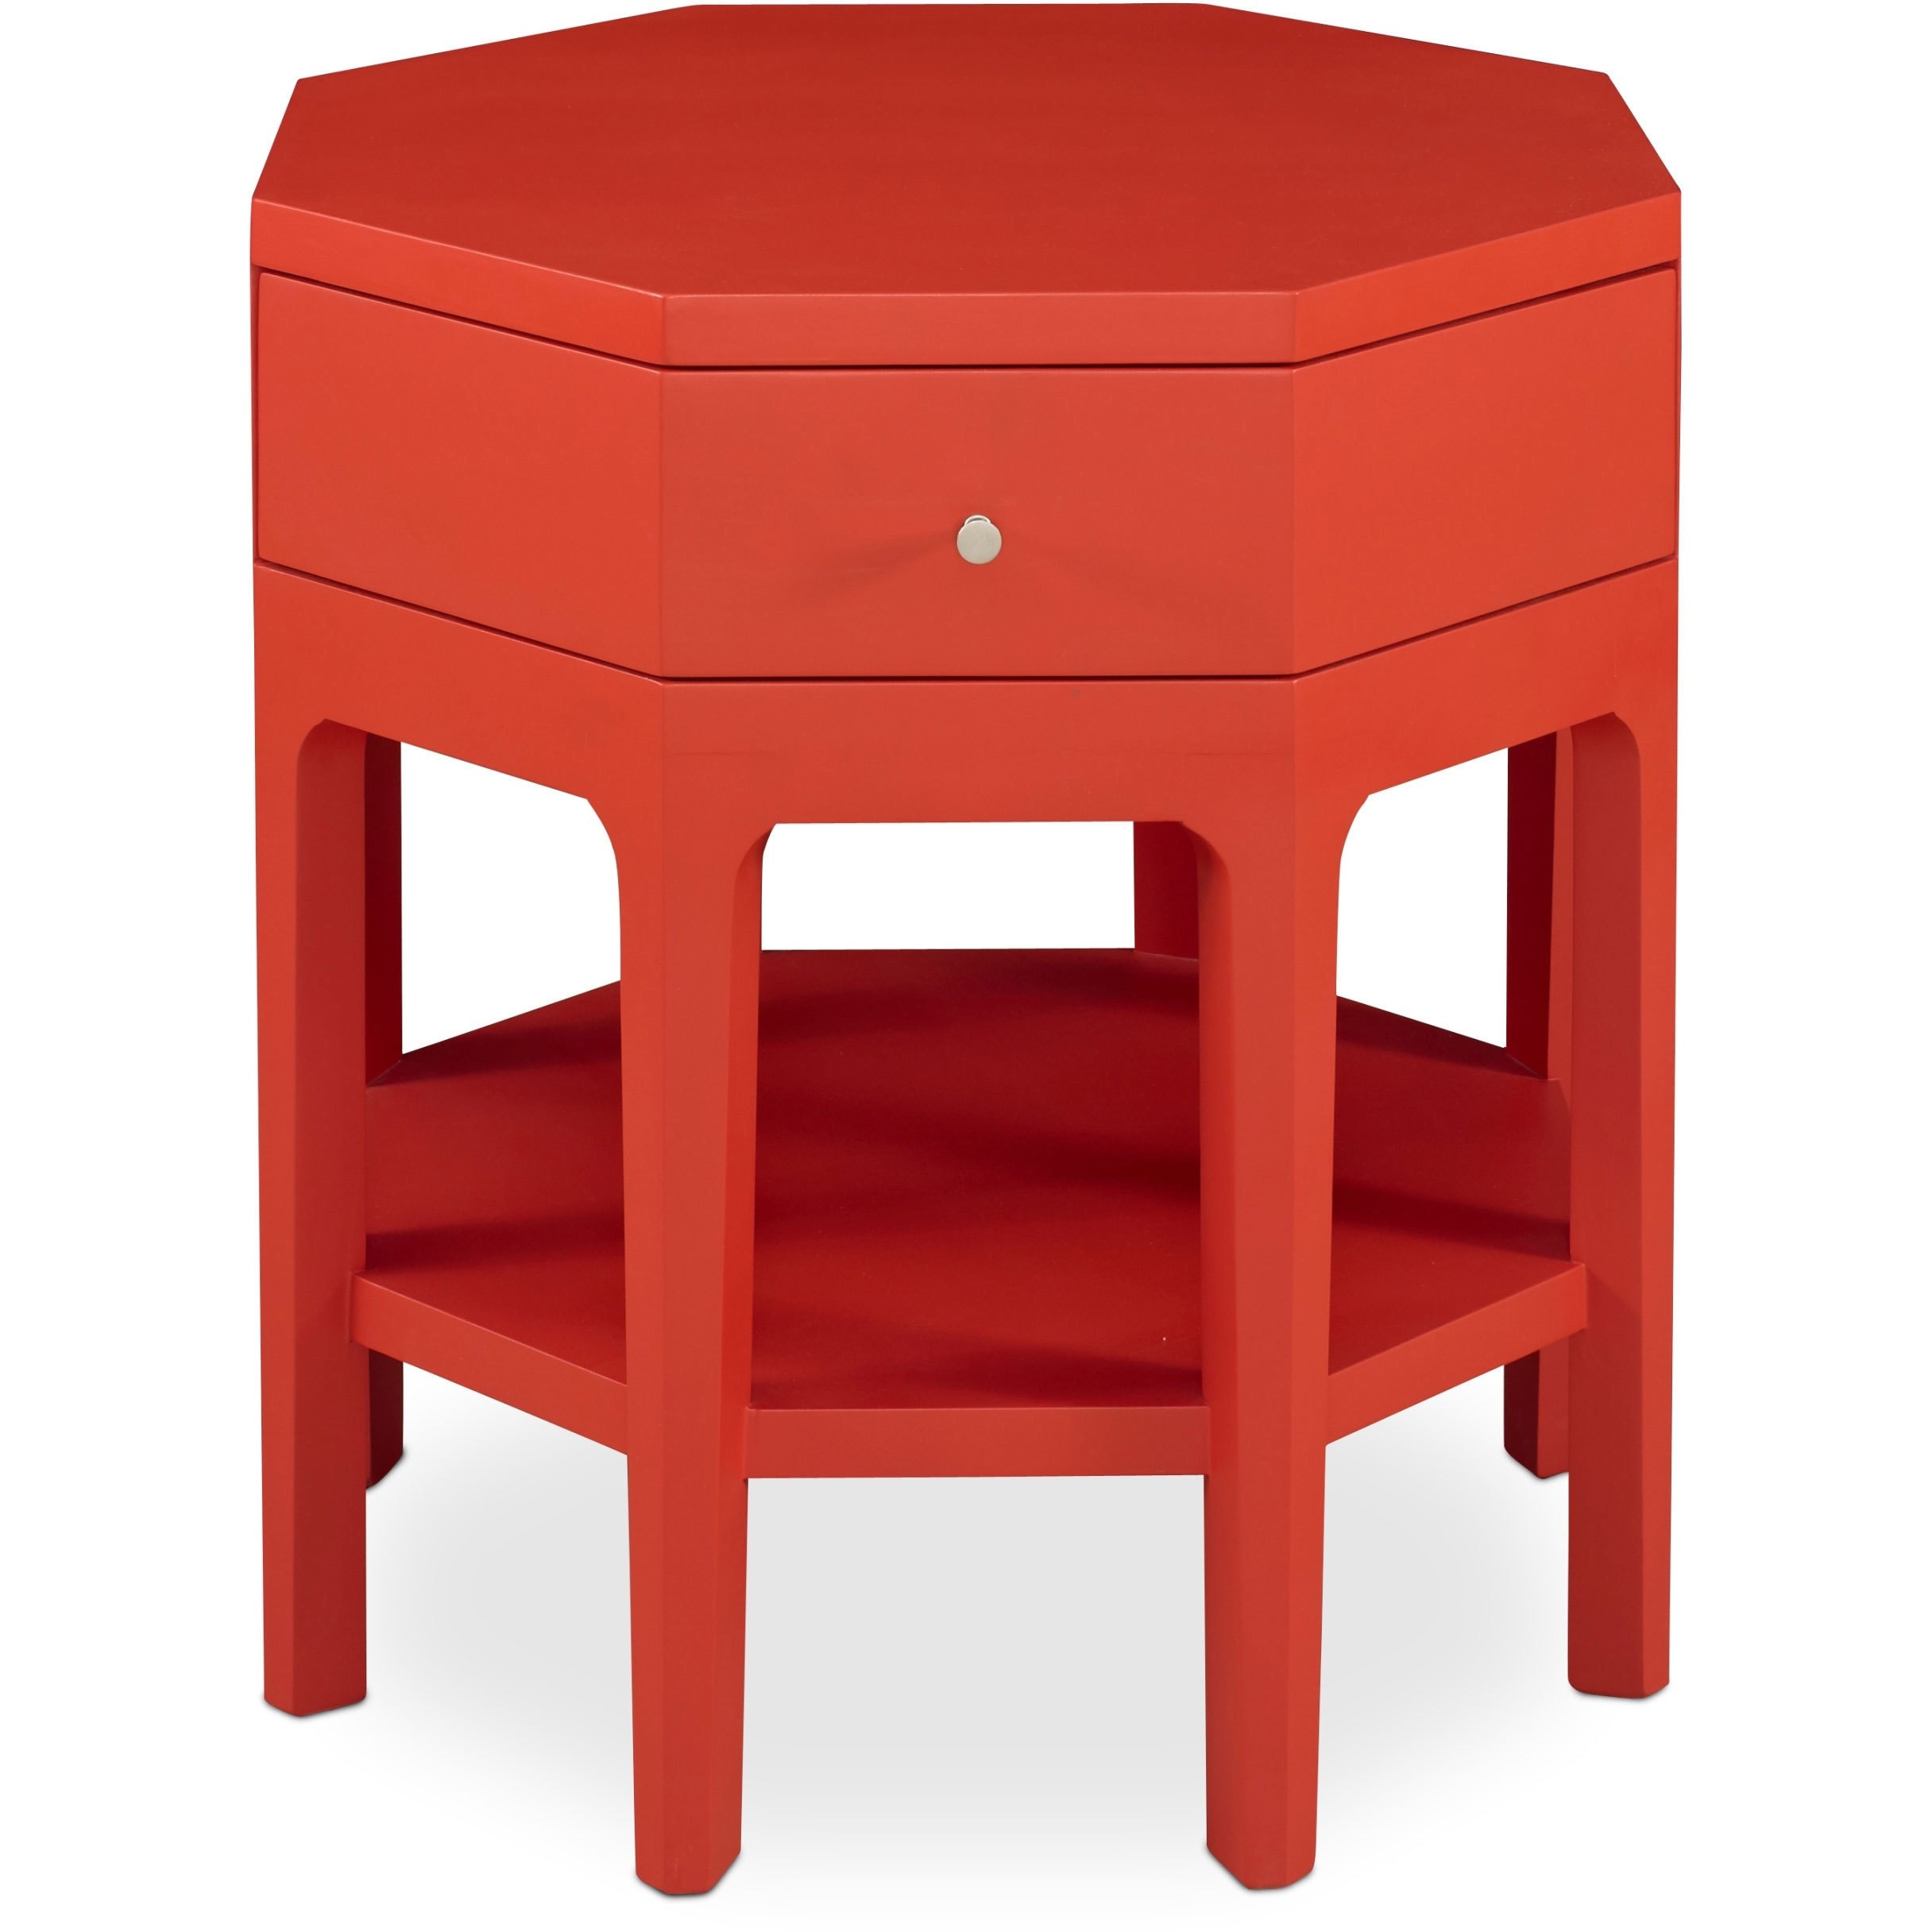 somerton dwelling improv red octagon accent table free shipping today acrylic side with shelf marble desk small grey console west elm lamp shades glass living room set dale drawer